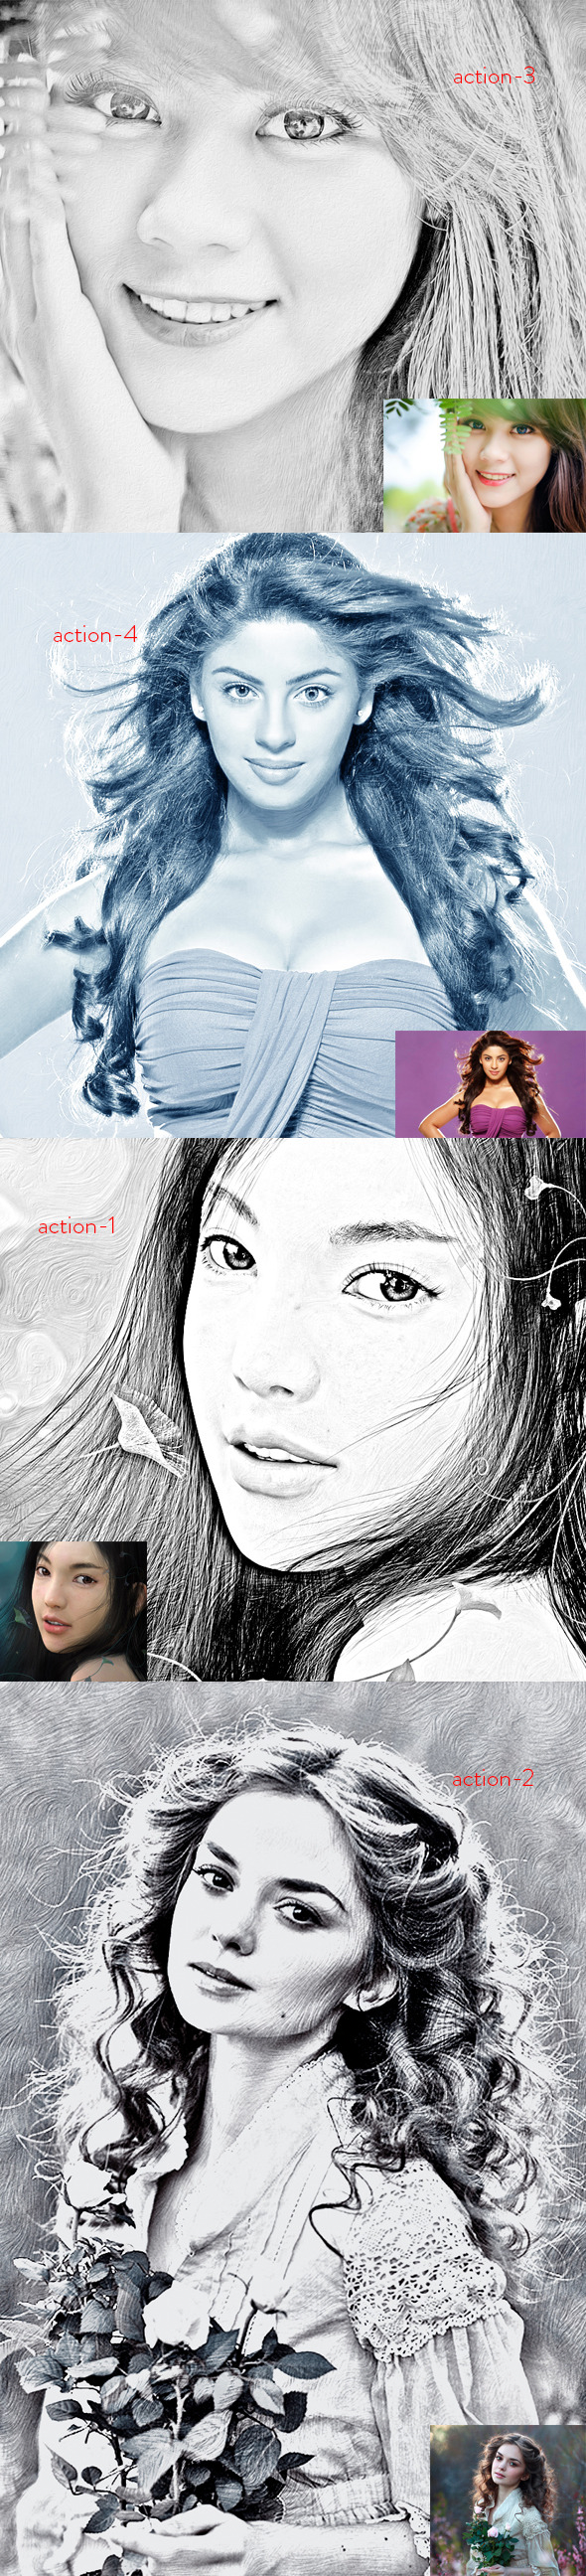 Exclusive Sketch Action - Photo Effects Actions